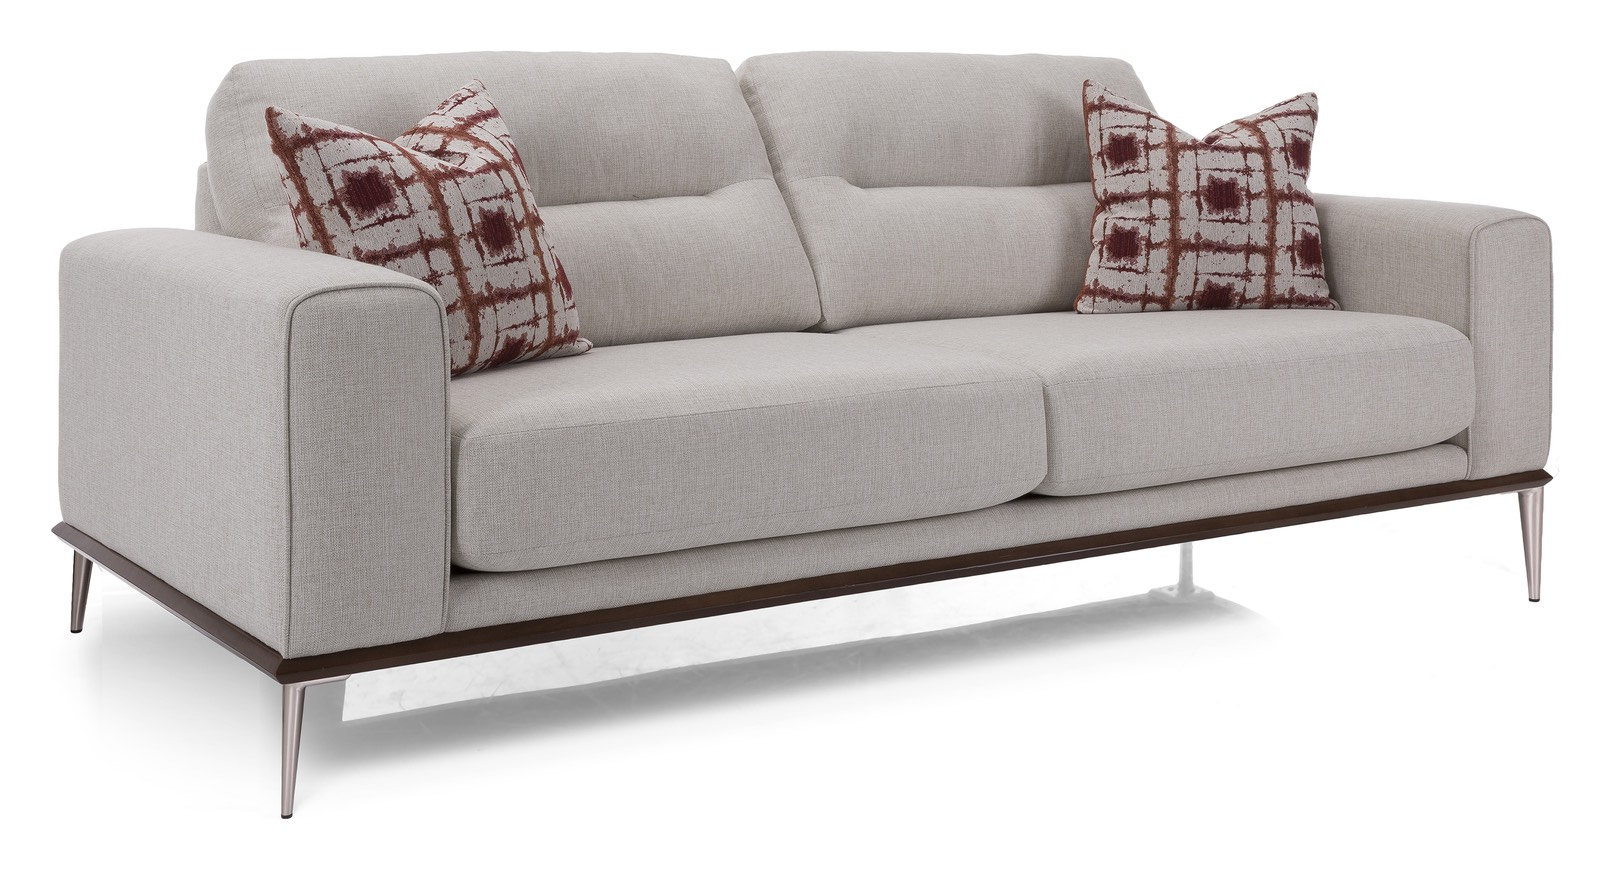 modern two seat sofa with silver legs and two red pillows